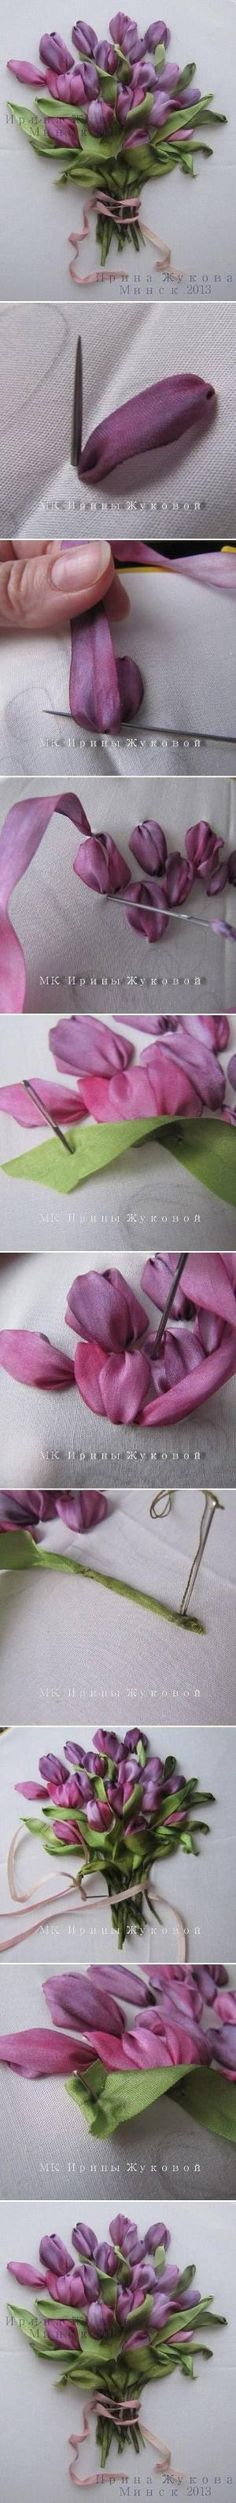 Ribbon Embroidery Flowers by Hand - Embroidery Patterns Ribbon Art, Ribbon Crafts, Fabric Crafts, Sewing Crafts, Ribbon Flower, Ribbon Bouquet, Diy Ribbon, Tulip Bouquet, Diy Crafts